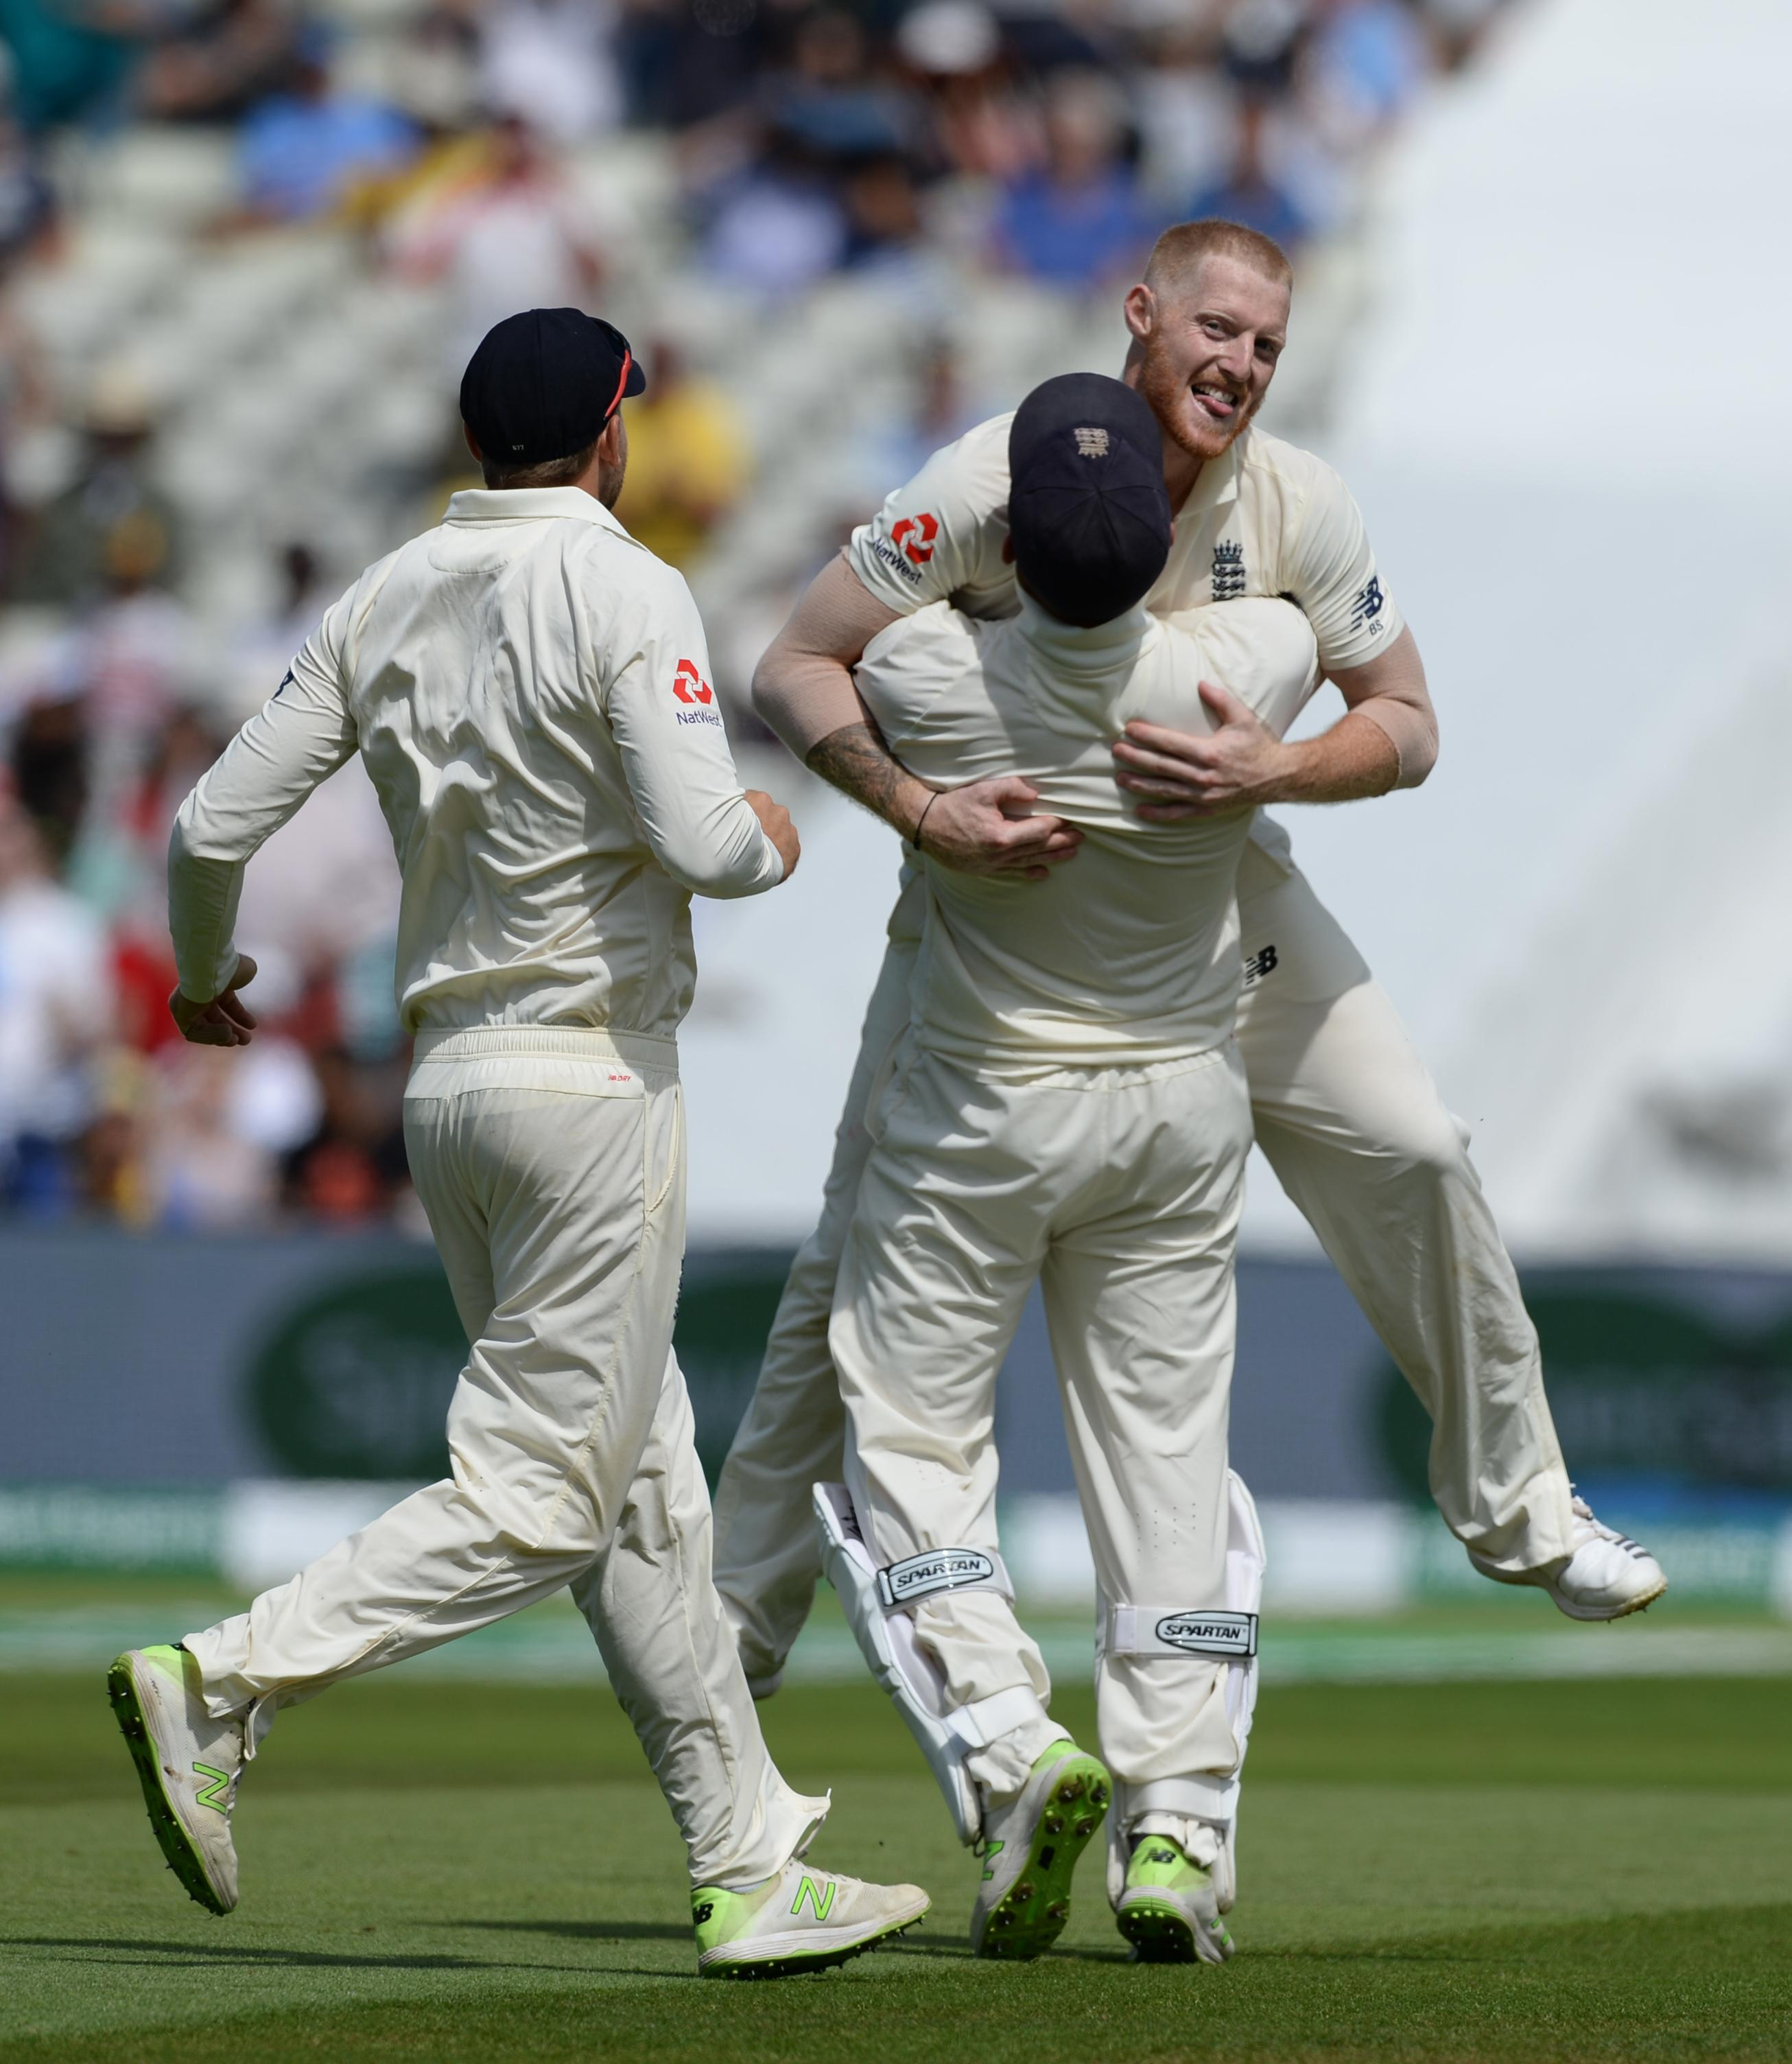 Ben Stokes has joined the England squad for the Third Test against India